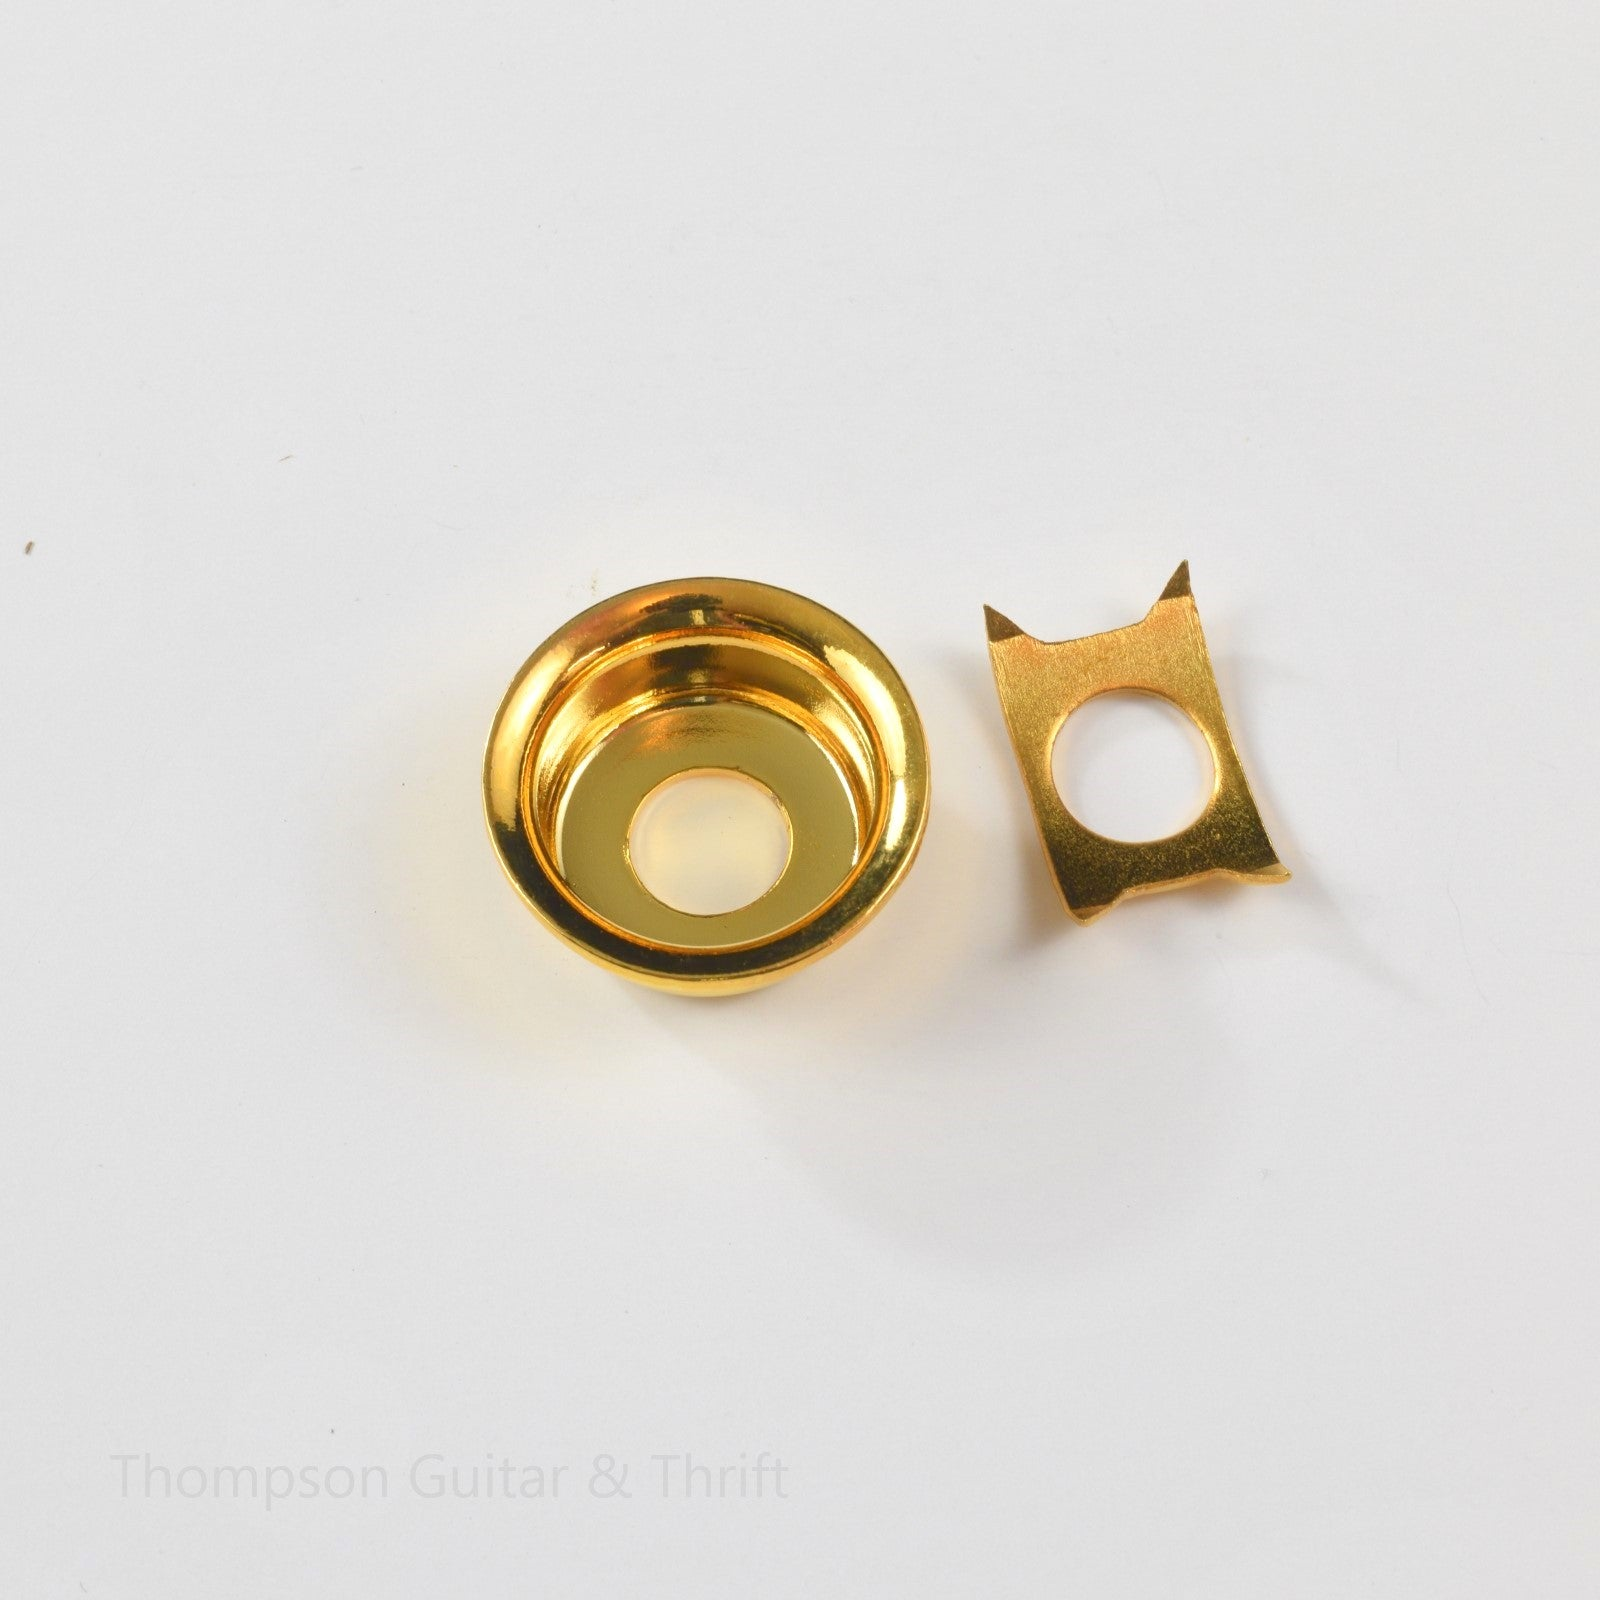 Gold Tele Style Round Cup Jack Plate w/Retainer Clip